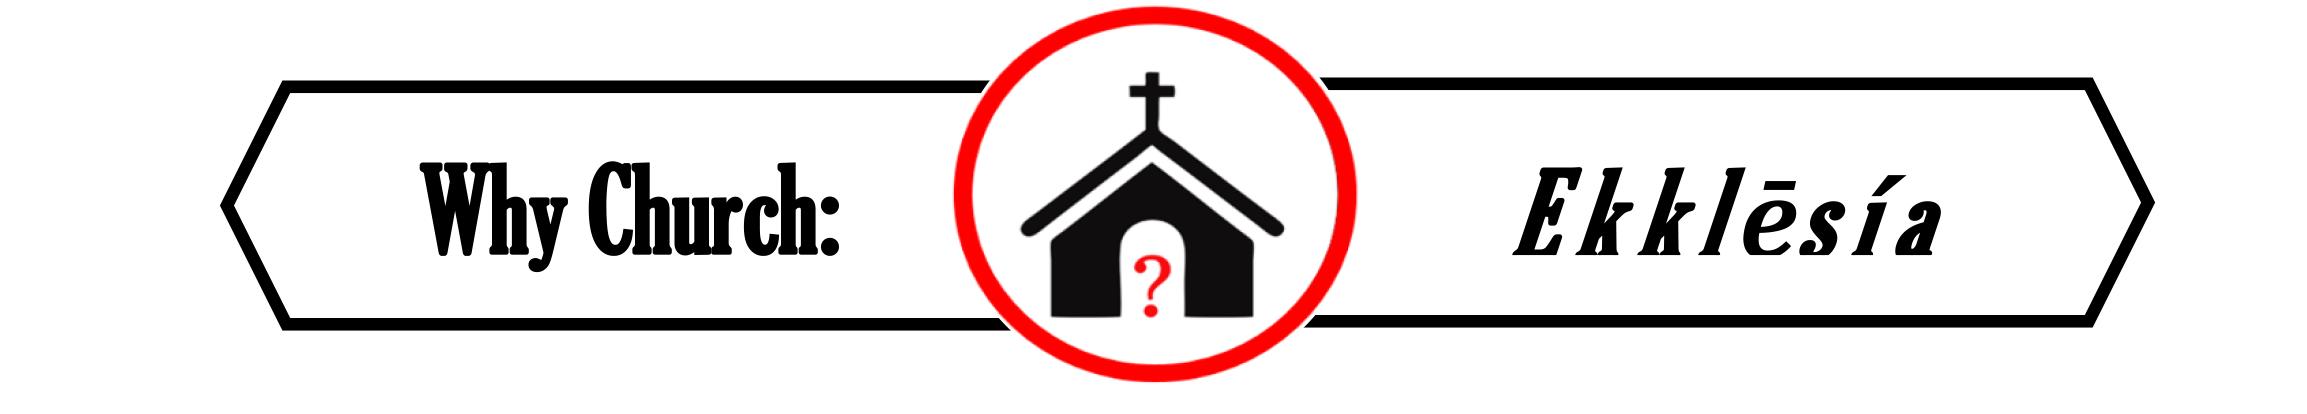 Why Church? - July 22, 2018 - Sept 9, 2018